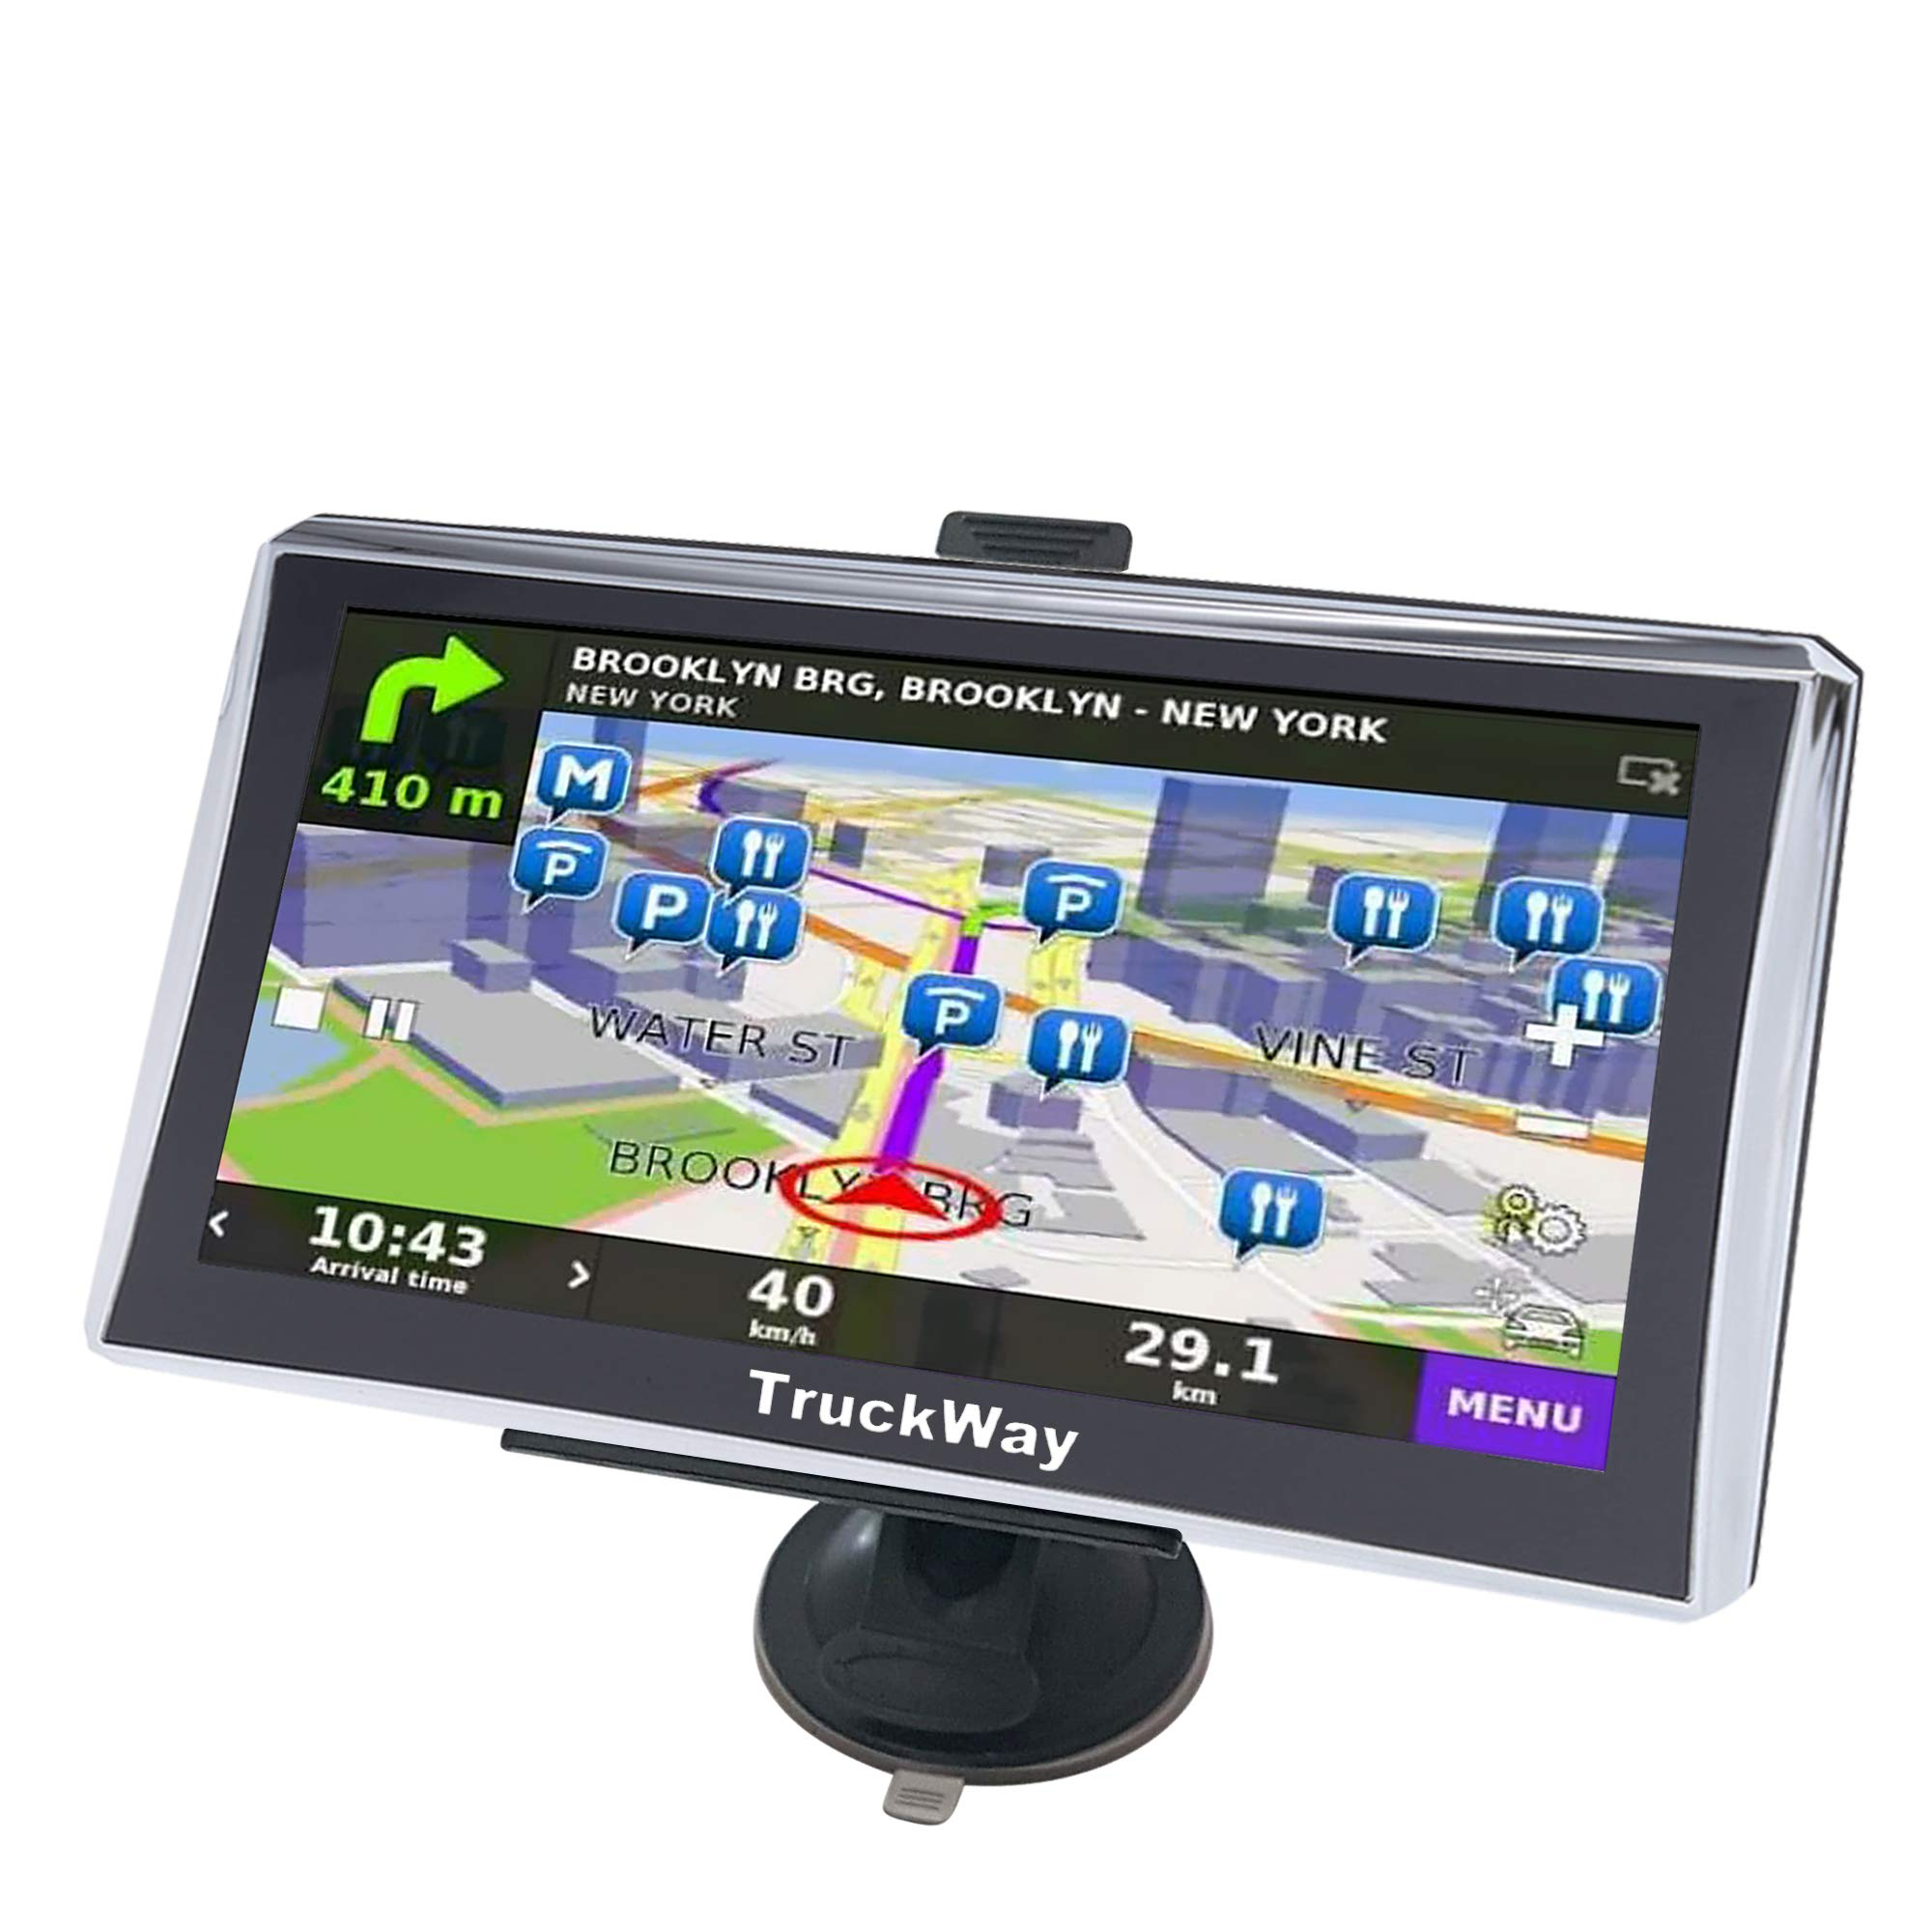 TruckWay GPS - Pro Series Model 720 - Truck GPS 7'' Inch for Truck Drivers Navigation Lifetime North America Maps (USA + Canada) 3D & 2D Maps, Touch Screen, Turn by Turn Directions by TruckWay